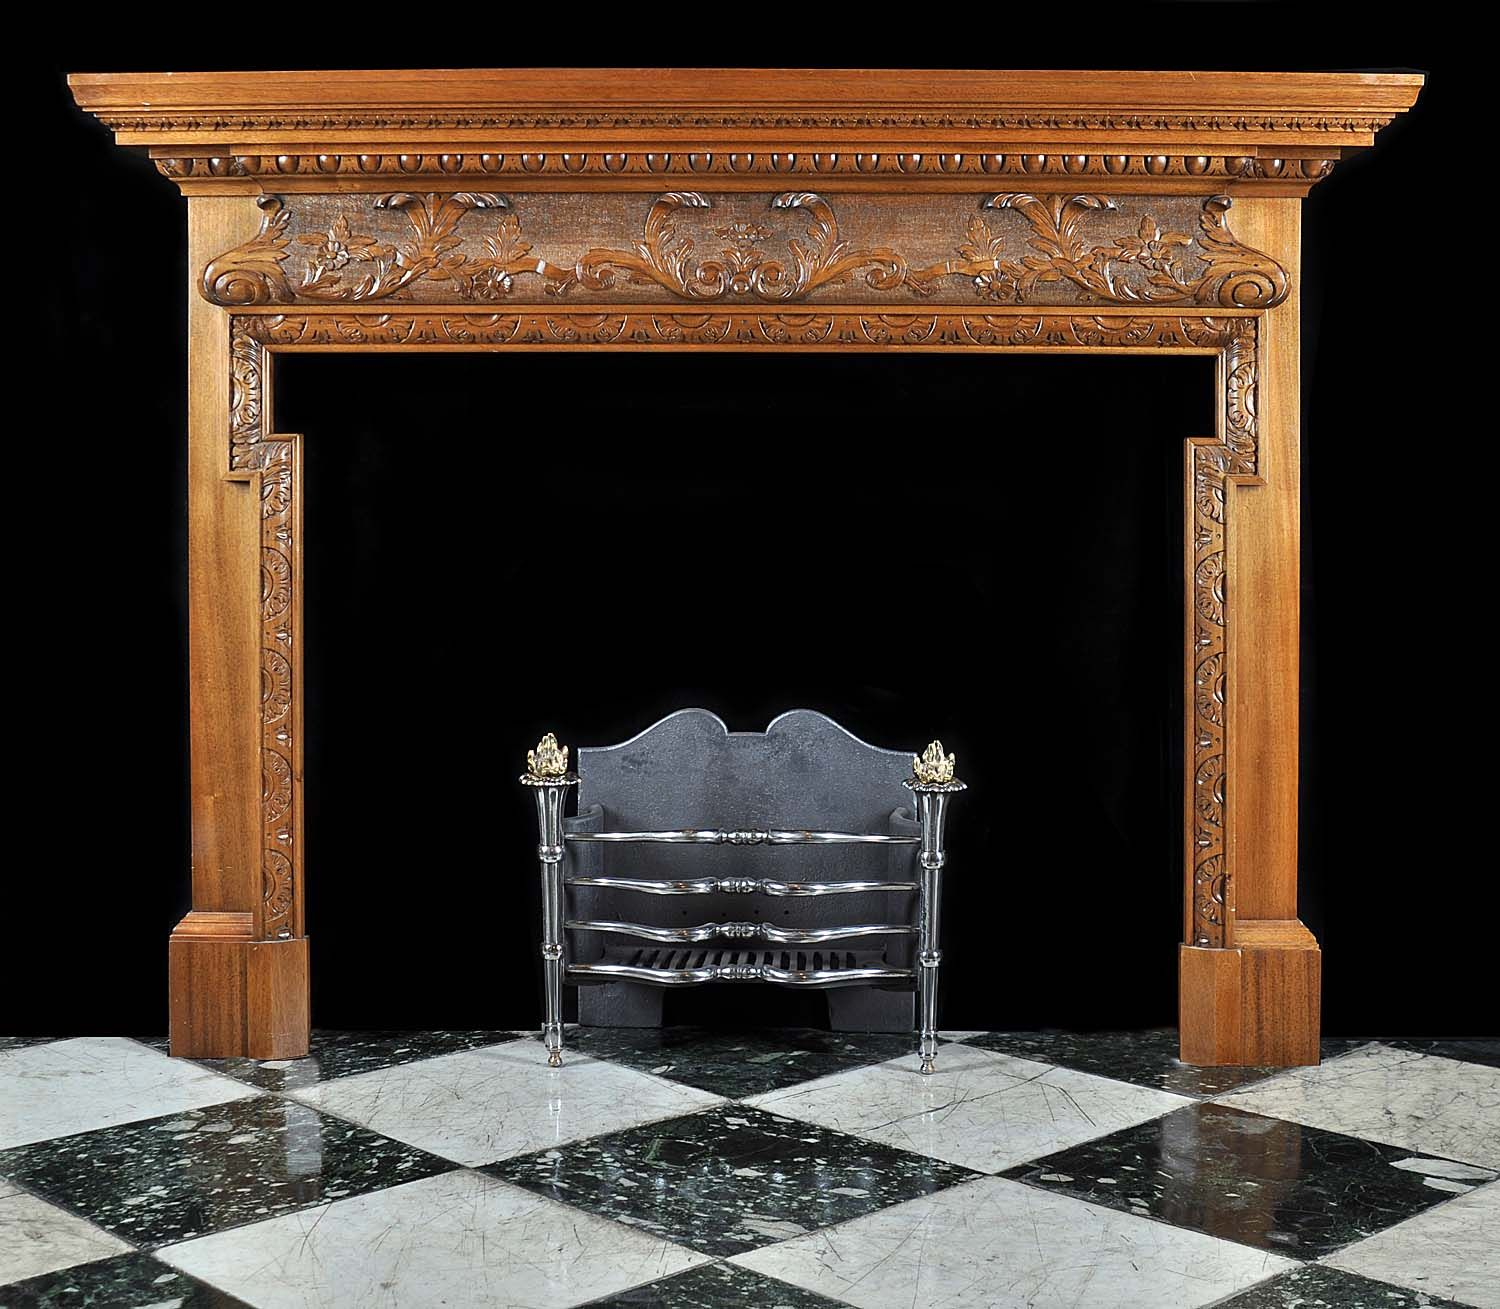 antique carved wood georgian fireplace mantel house antique wooden fireplace screens antique wooden fireplace with shaped mirror